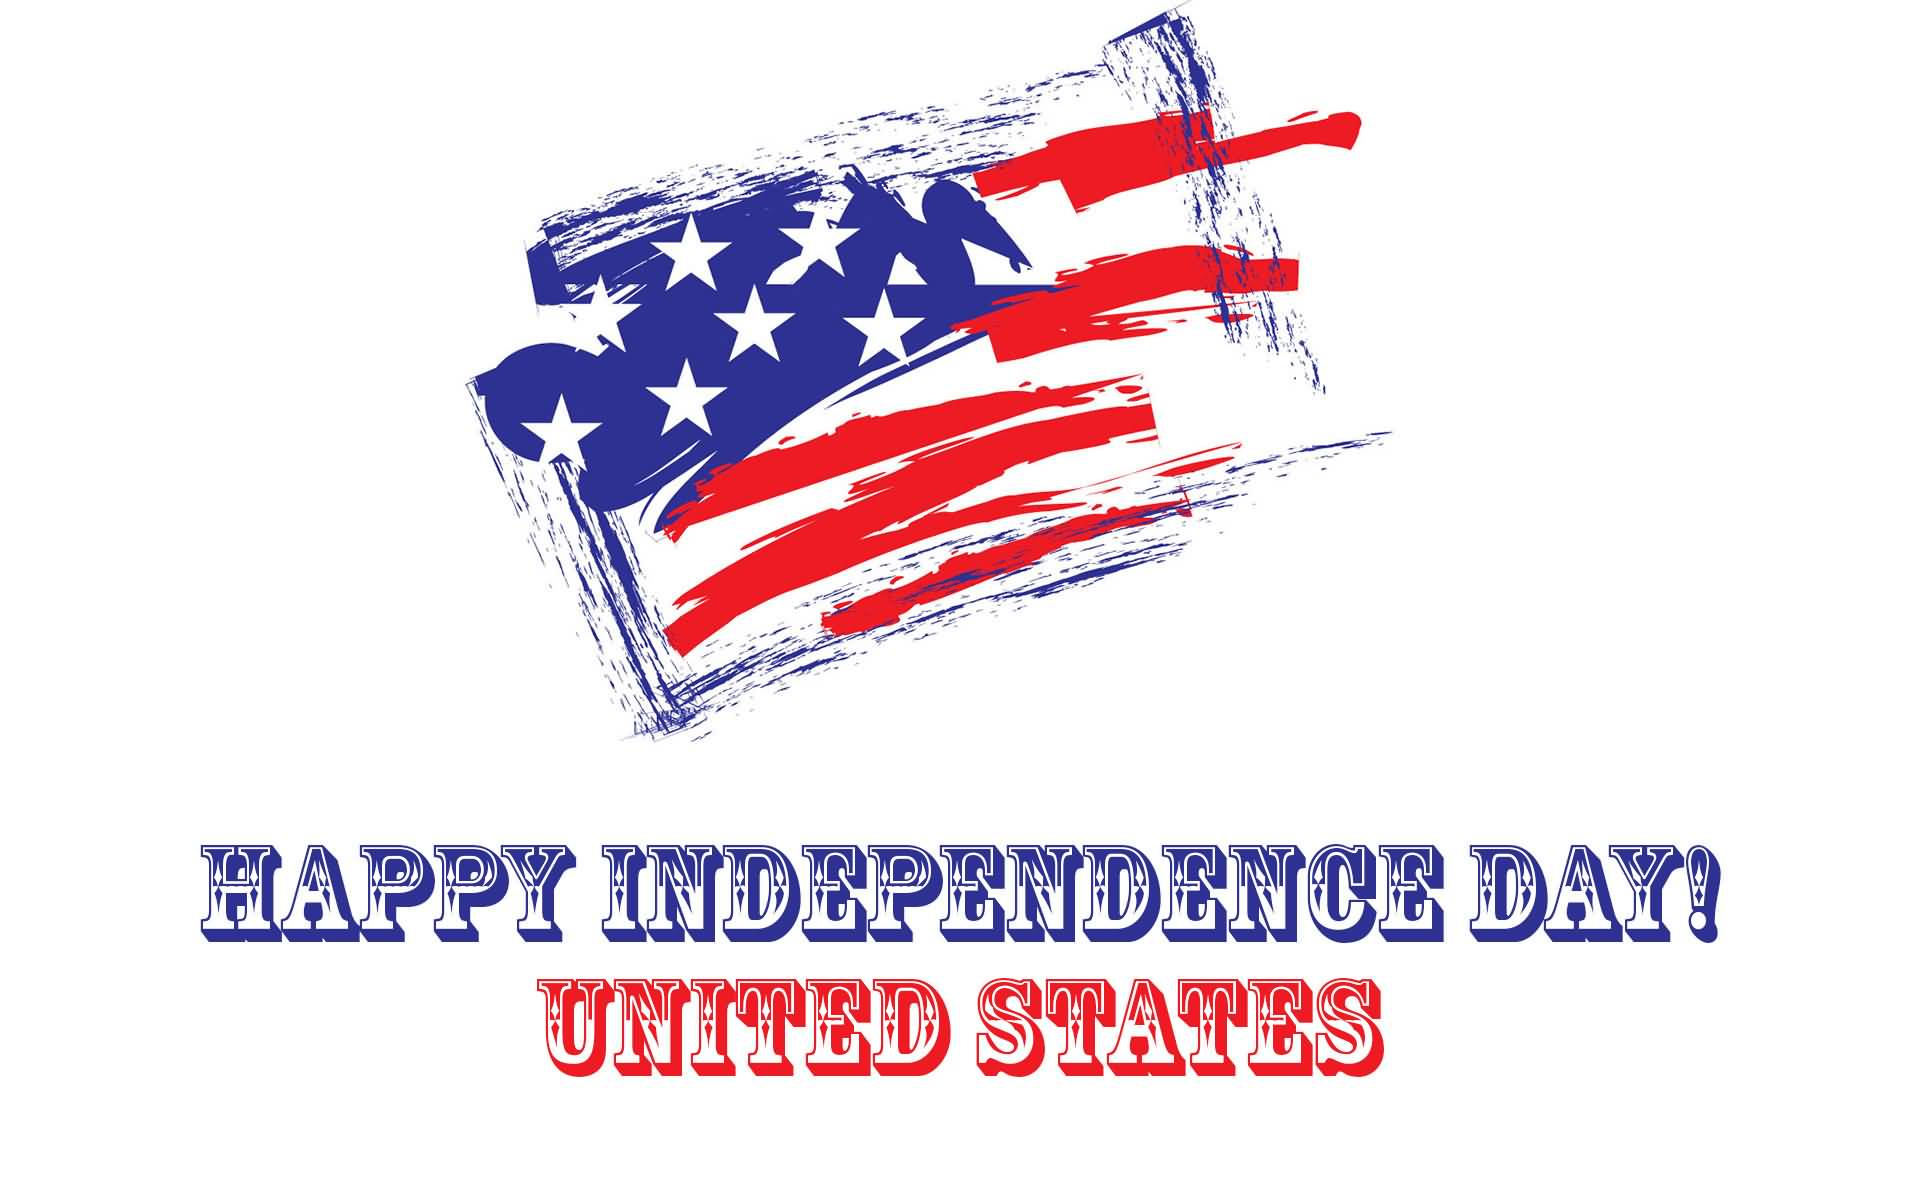 Happy Independence Day United Stated Wishes Graphics